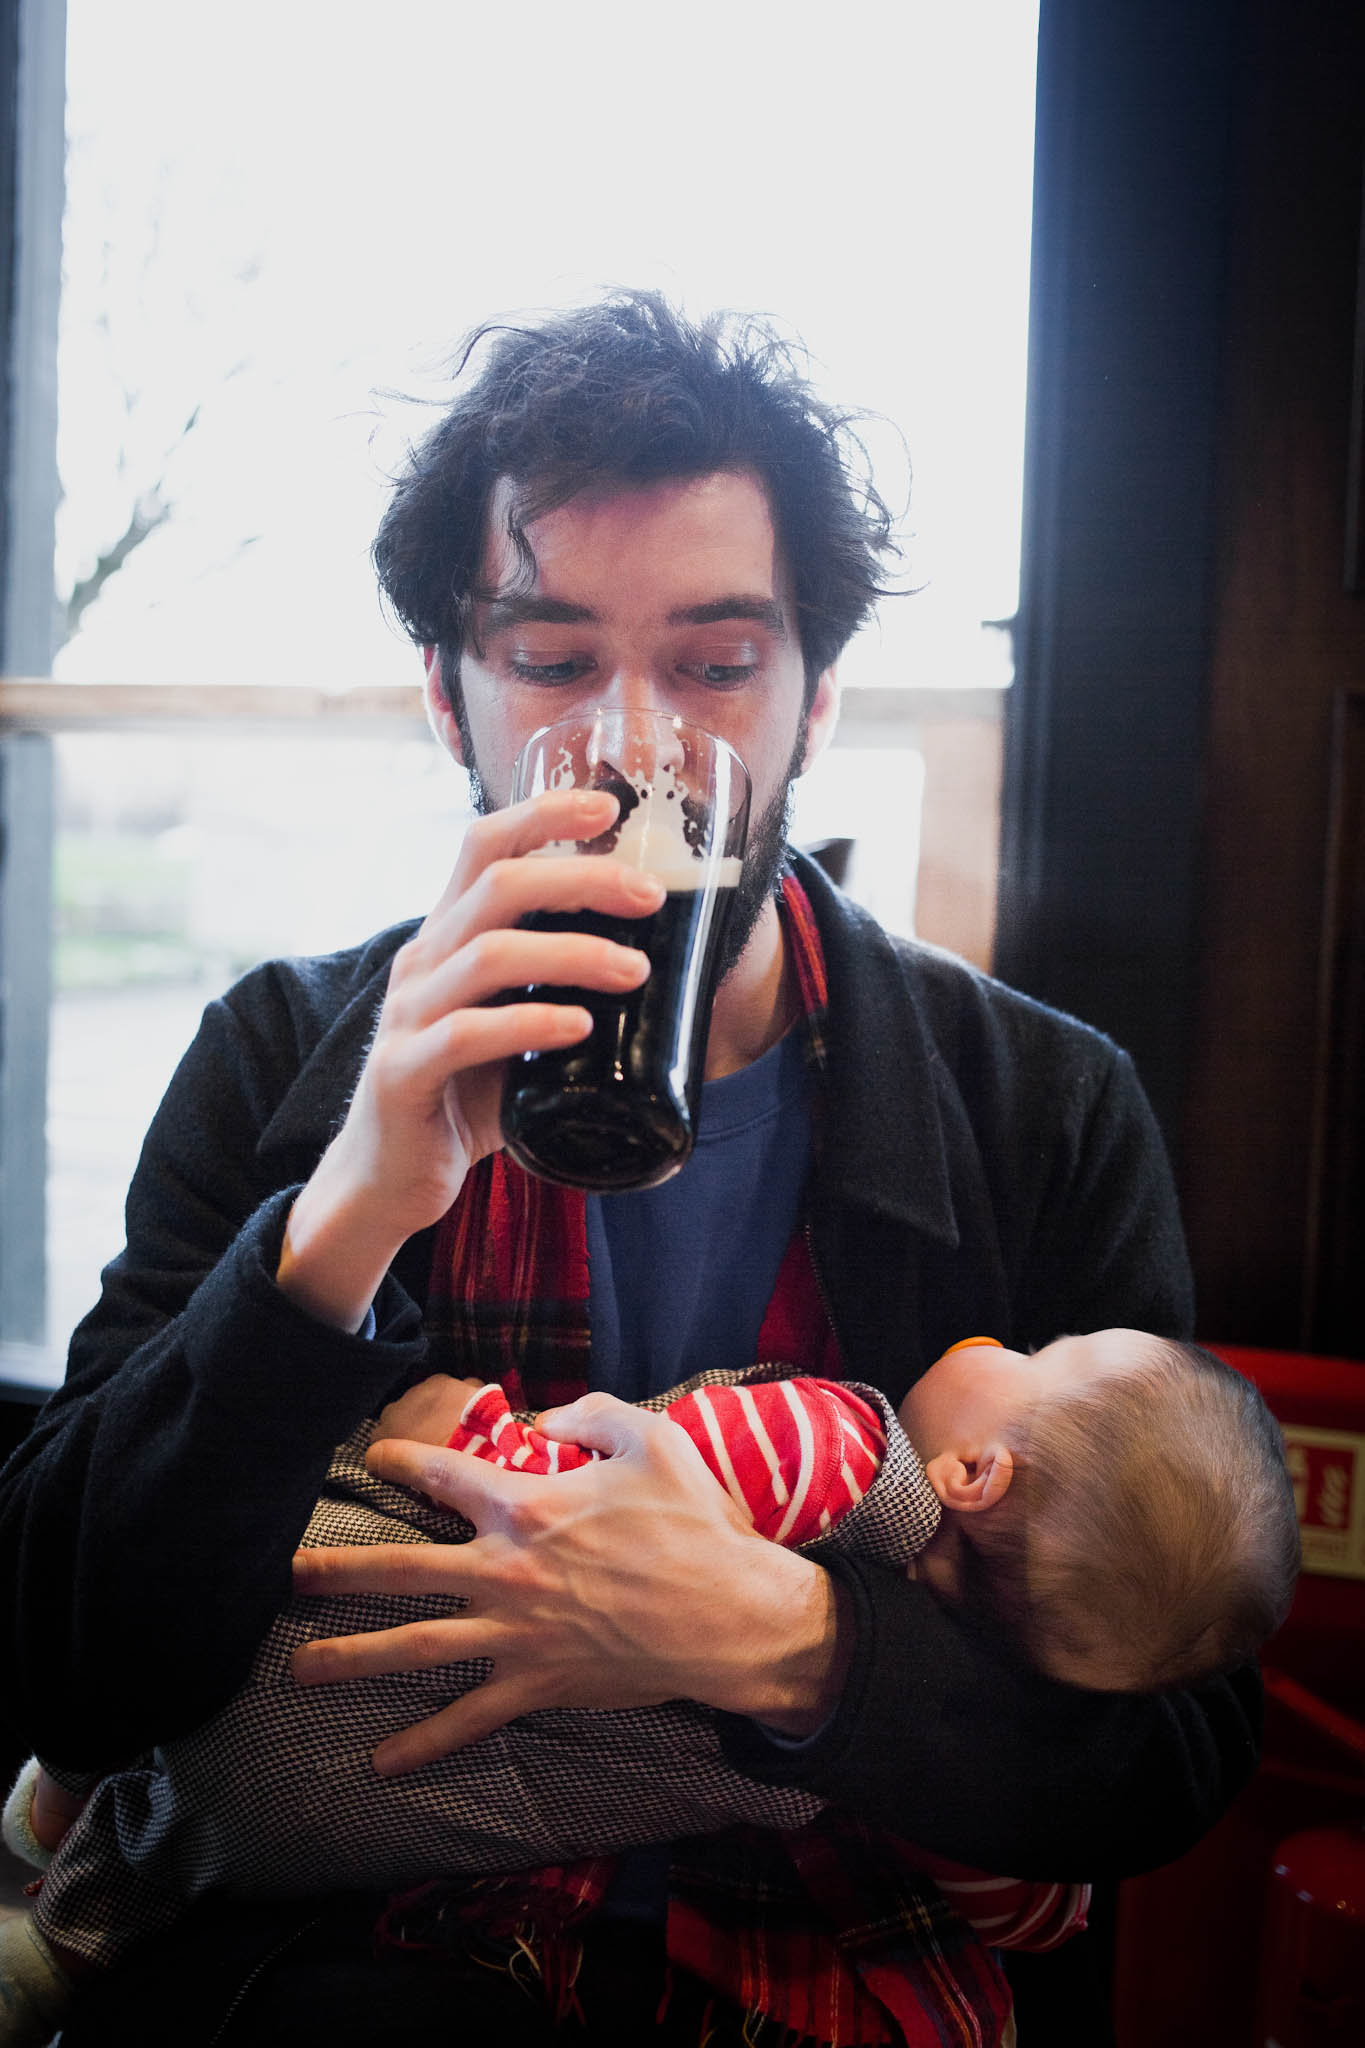 Father drinking pint of guinness watching baby daughter asleep in arms